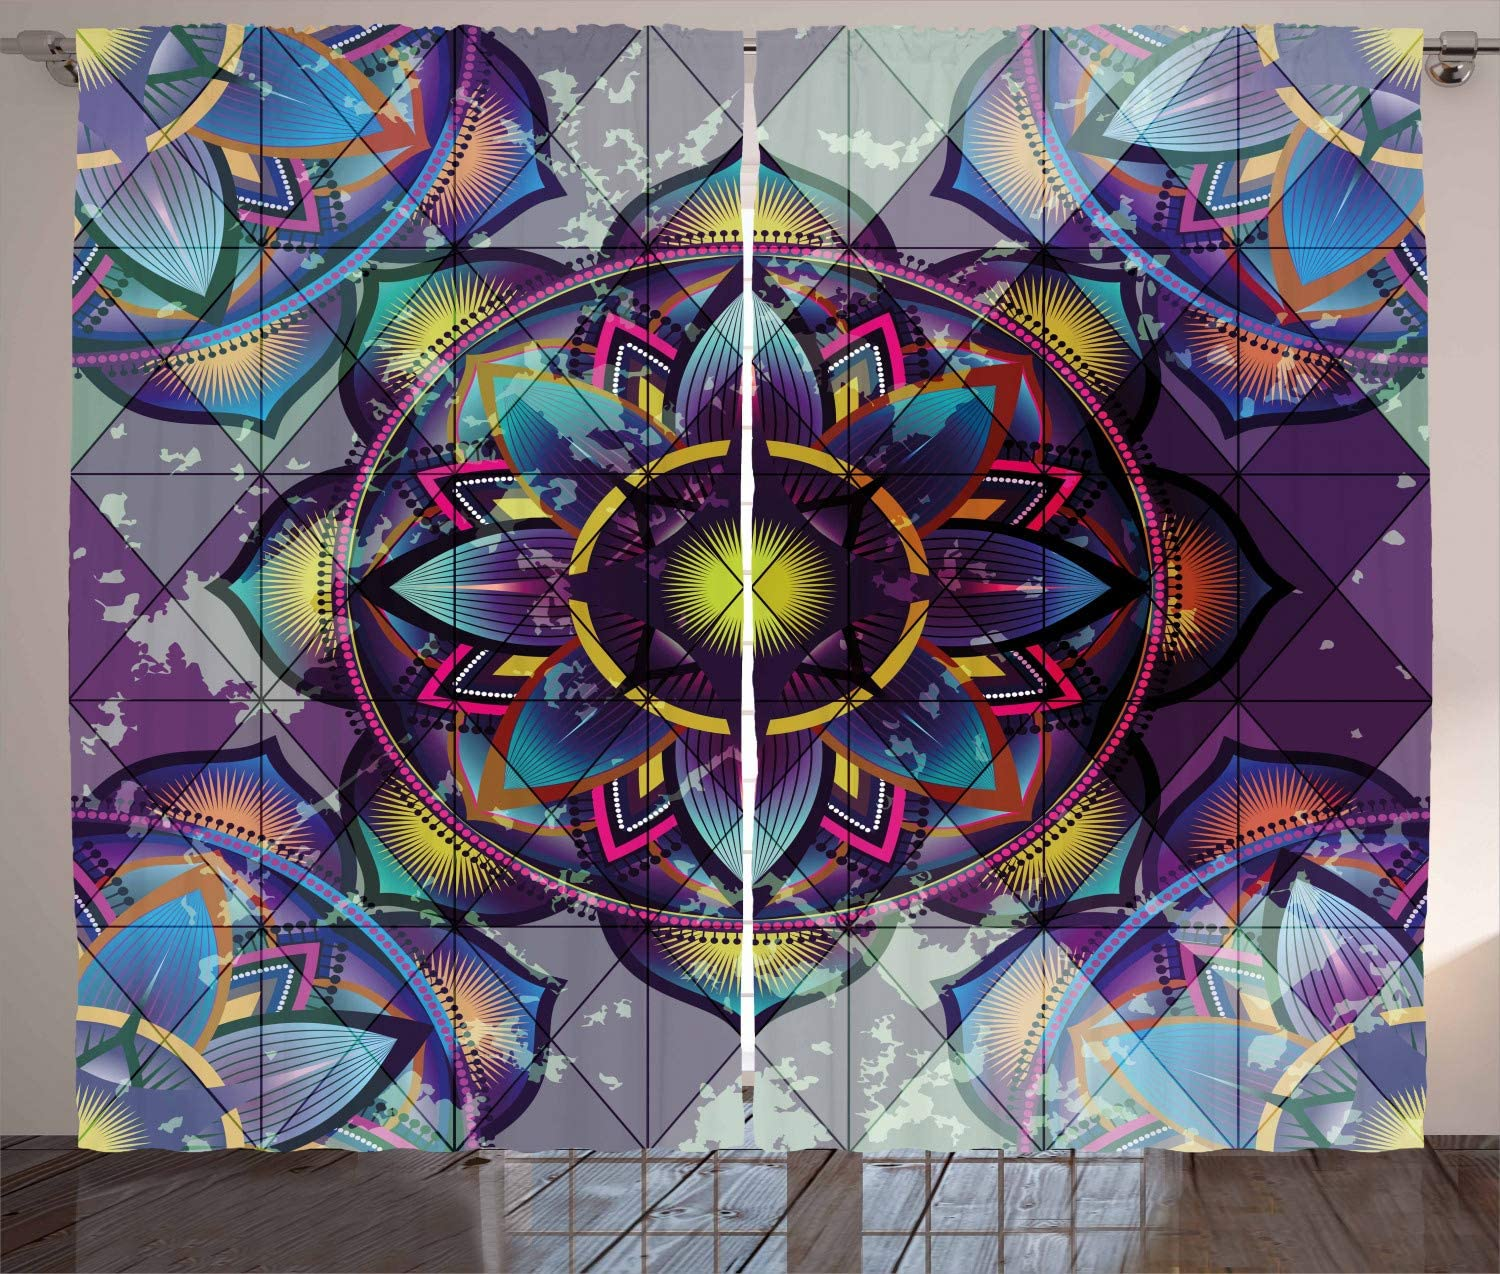 Ambesonne Lotus Curtains, Psychedelic Surreal Geometry Mandala Background with Futuristic Effects Print, Living Room Bedroom Window Drapes 2 Panel Set, 108